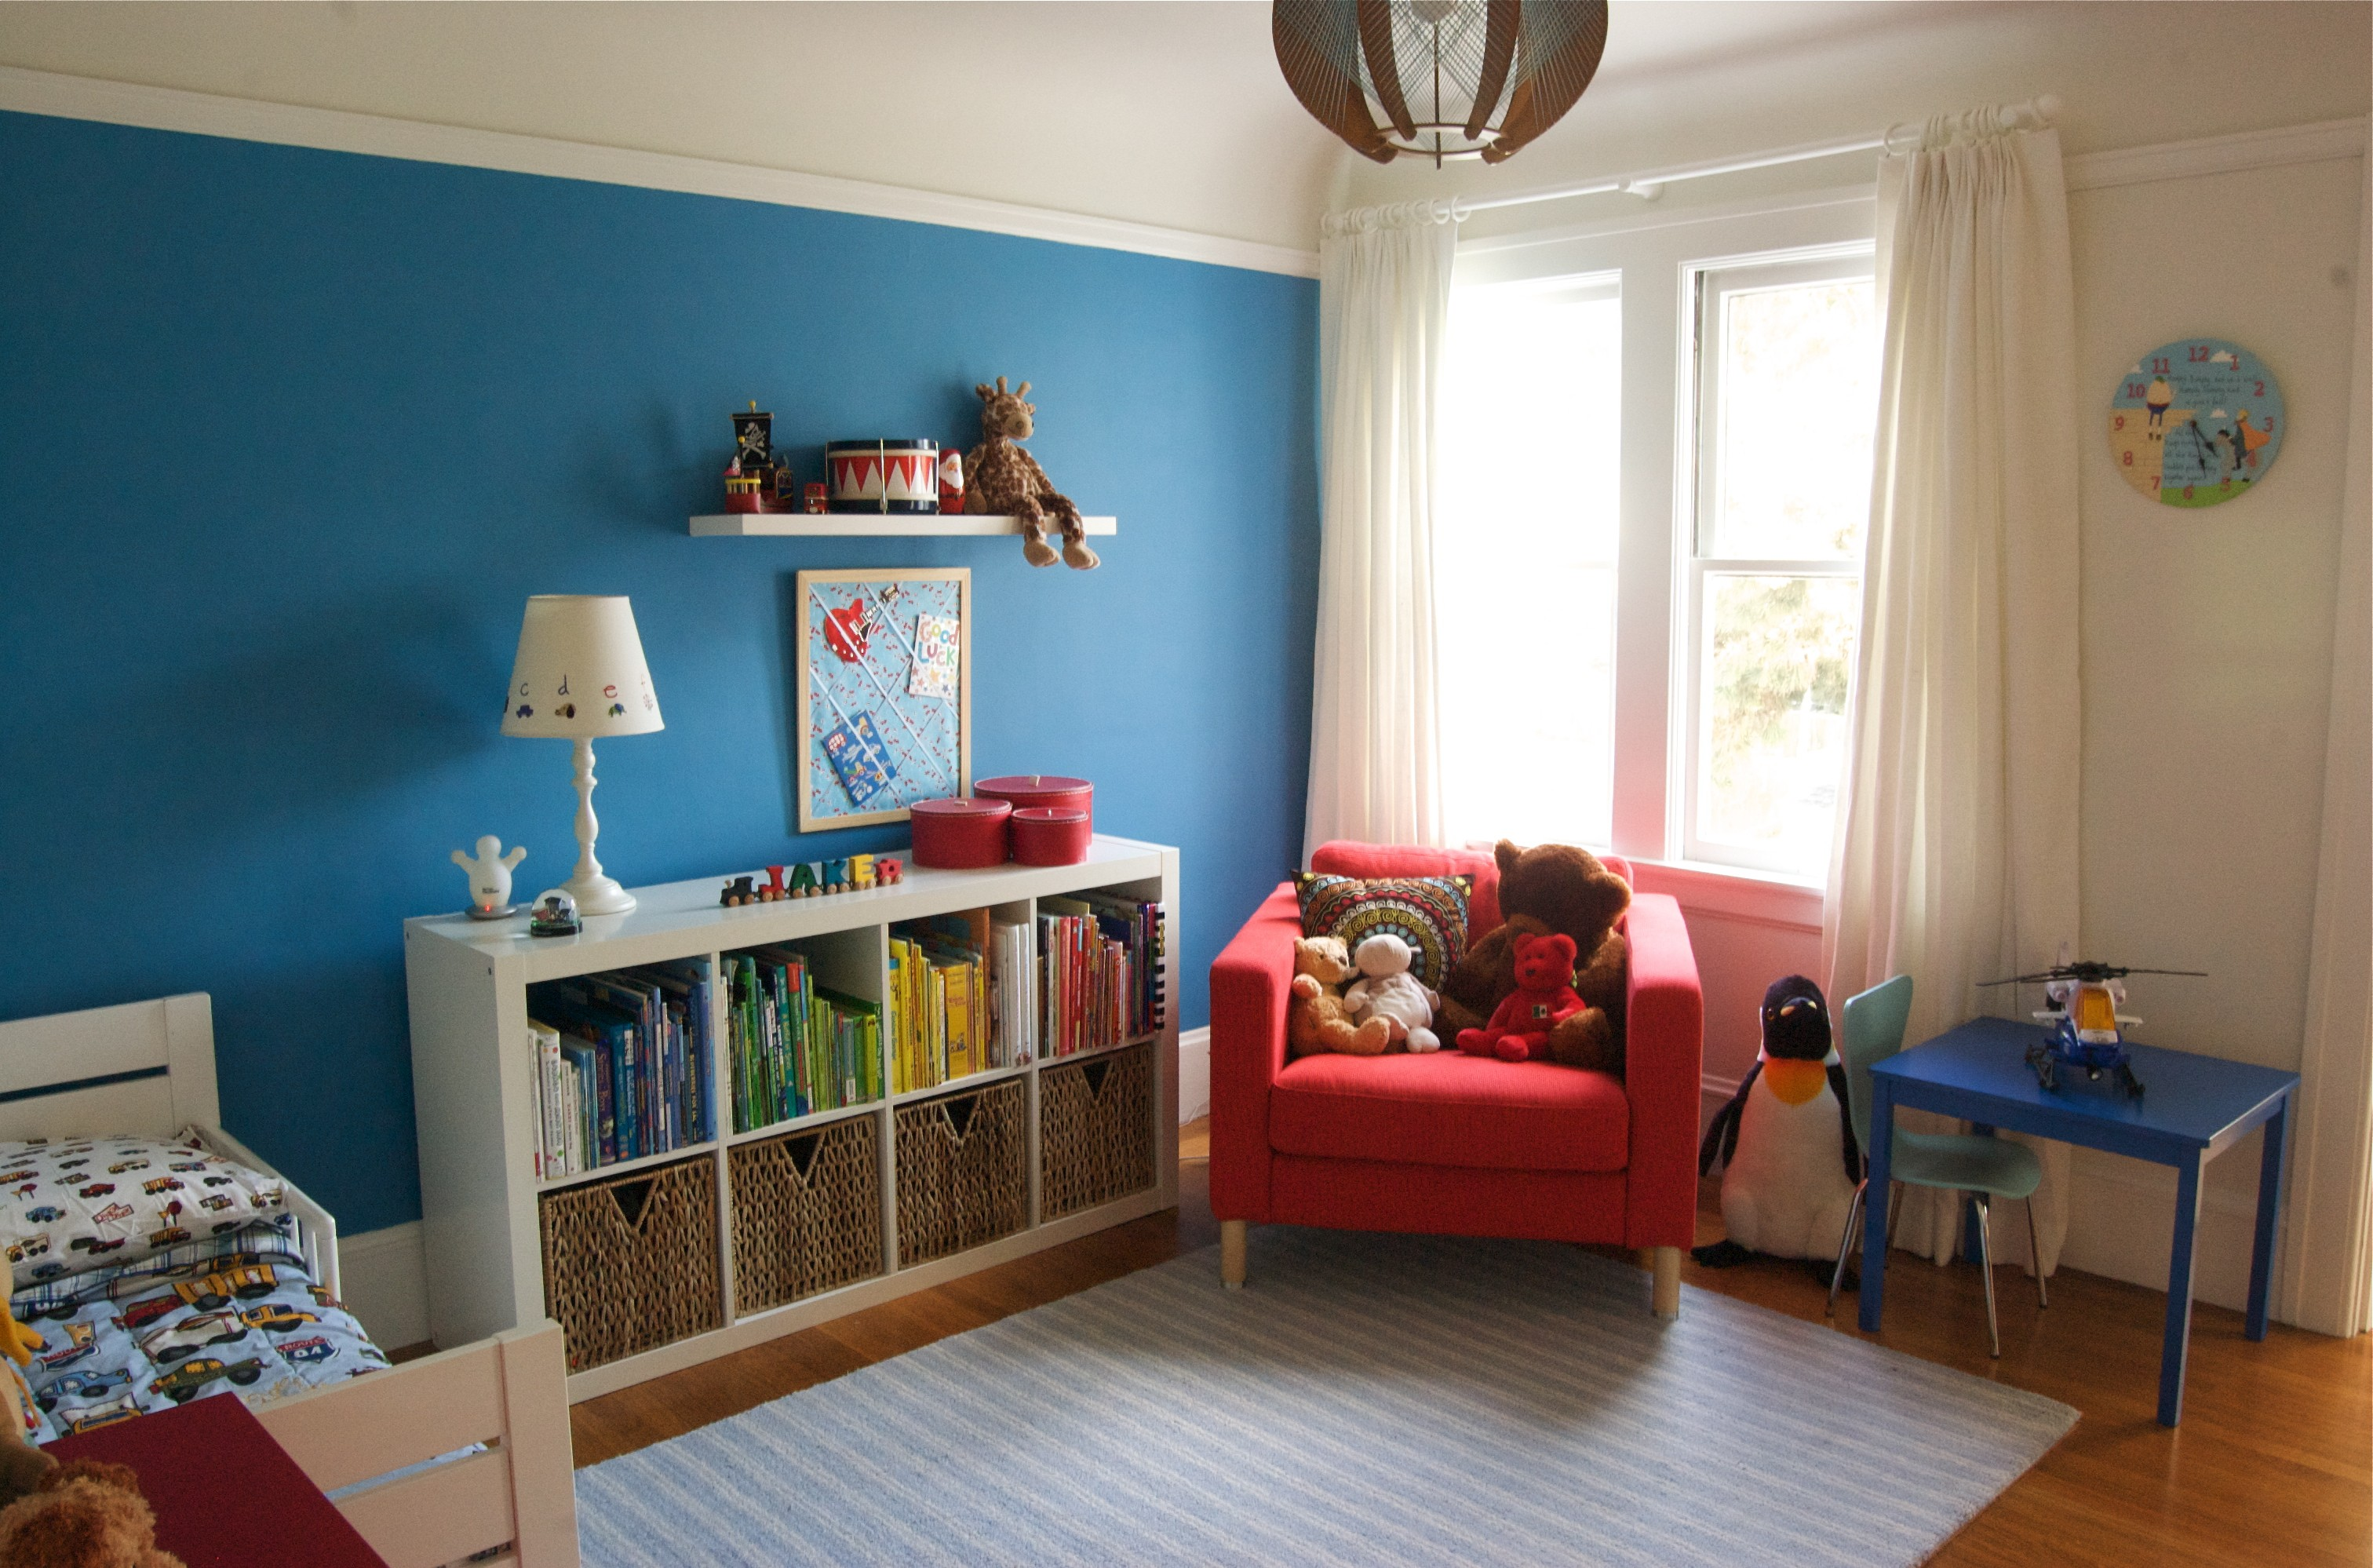 enchanting-diy-home-decor-ideas-toddler-boy-rooms-design-with-white-bed-along-white-book-shelves-and-white-table-lamp-also-red-sofa-chair-near-blue-table-plus-white-glass-window-and-white-curtain-as-w